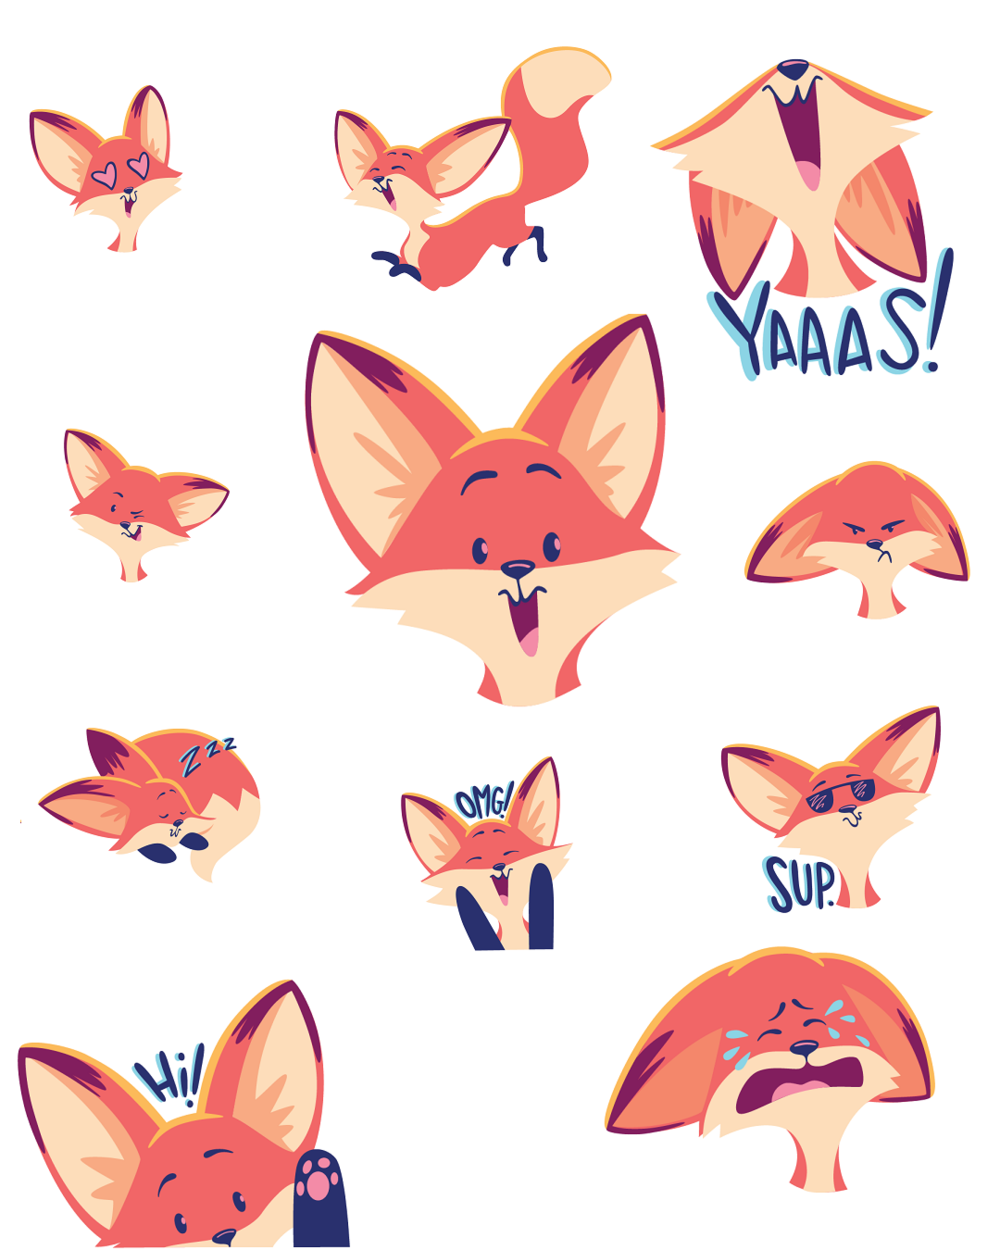 The Happy Fox - a sticker pack now available on the App Store!